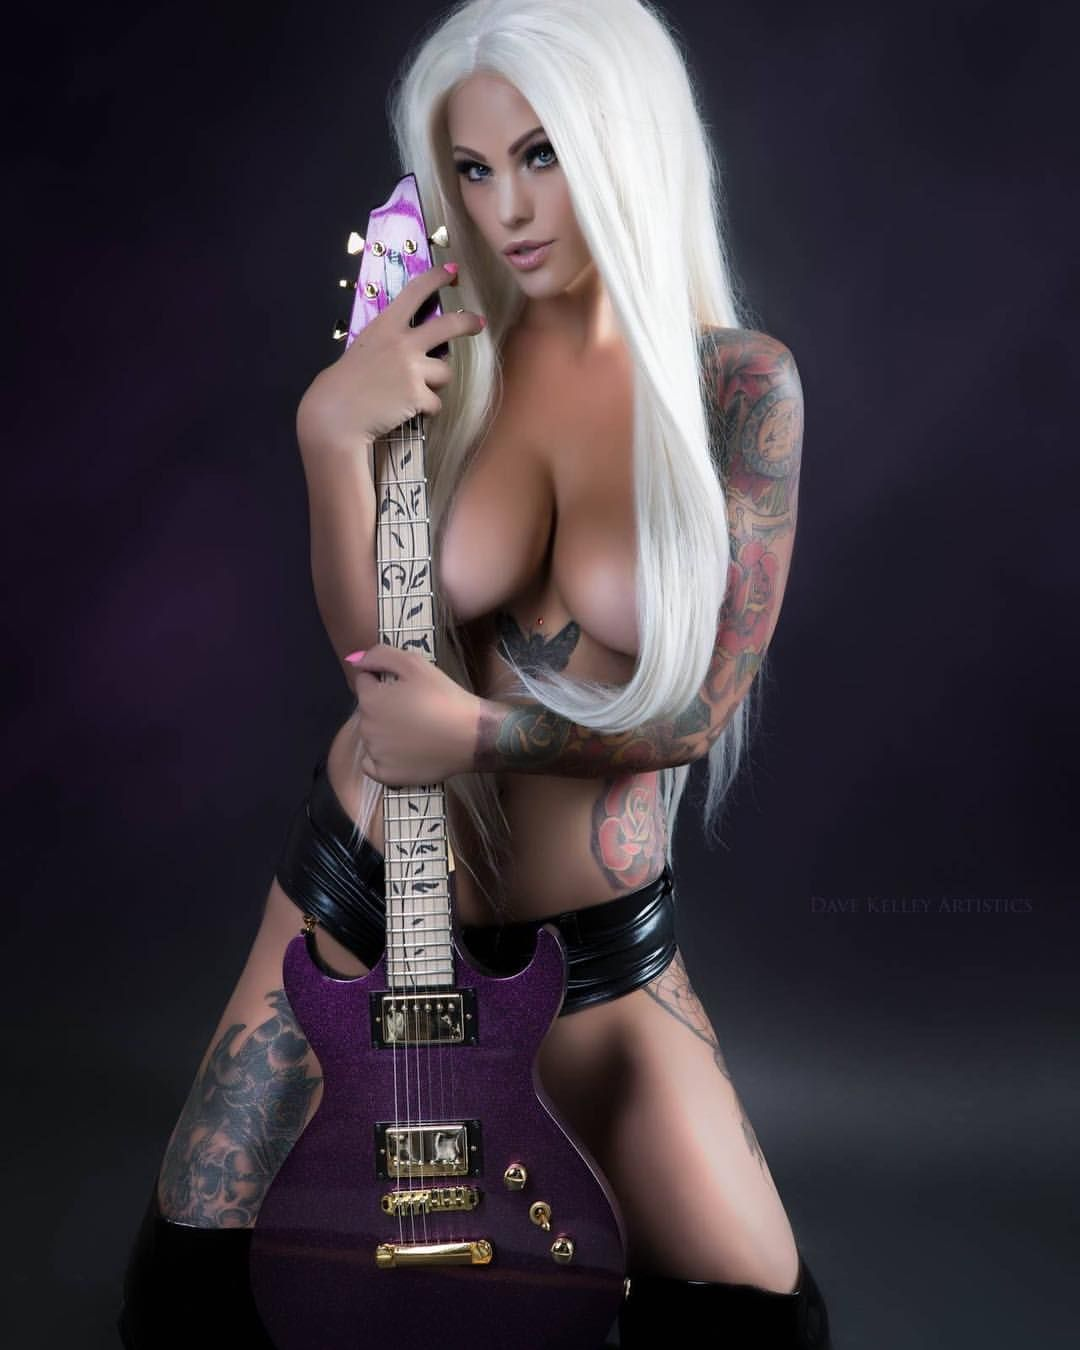 Naked heavy metal ladies #5